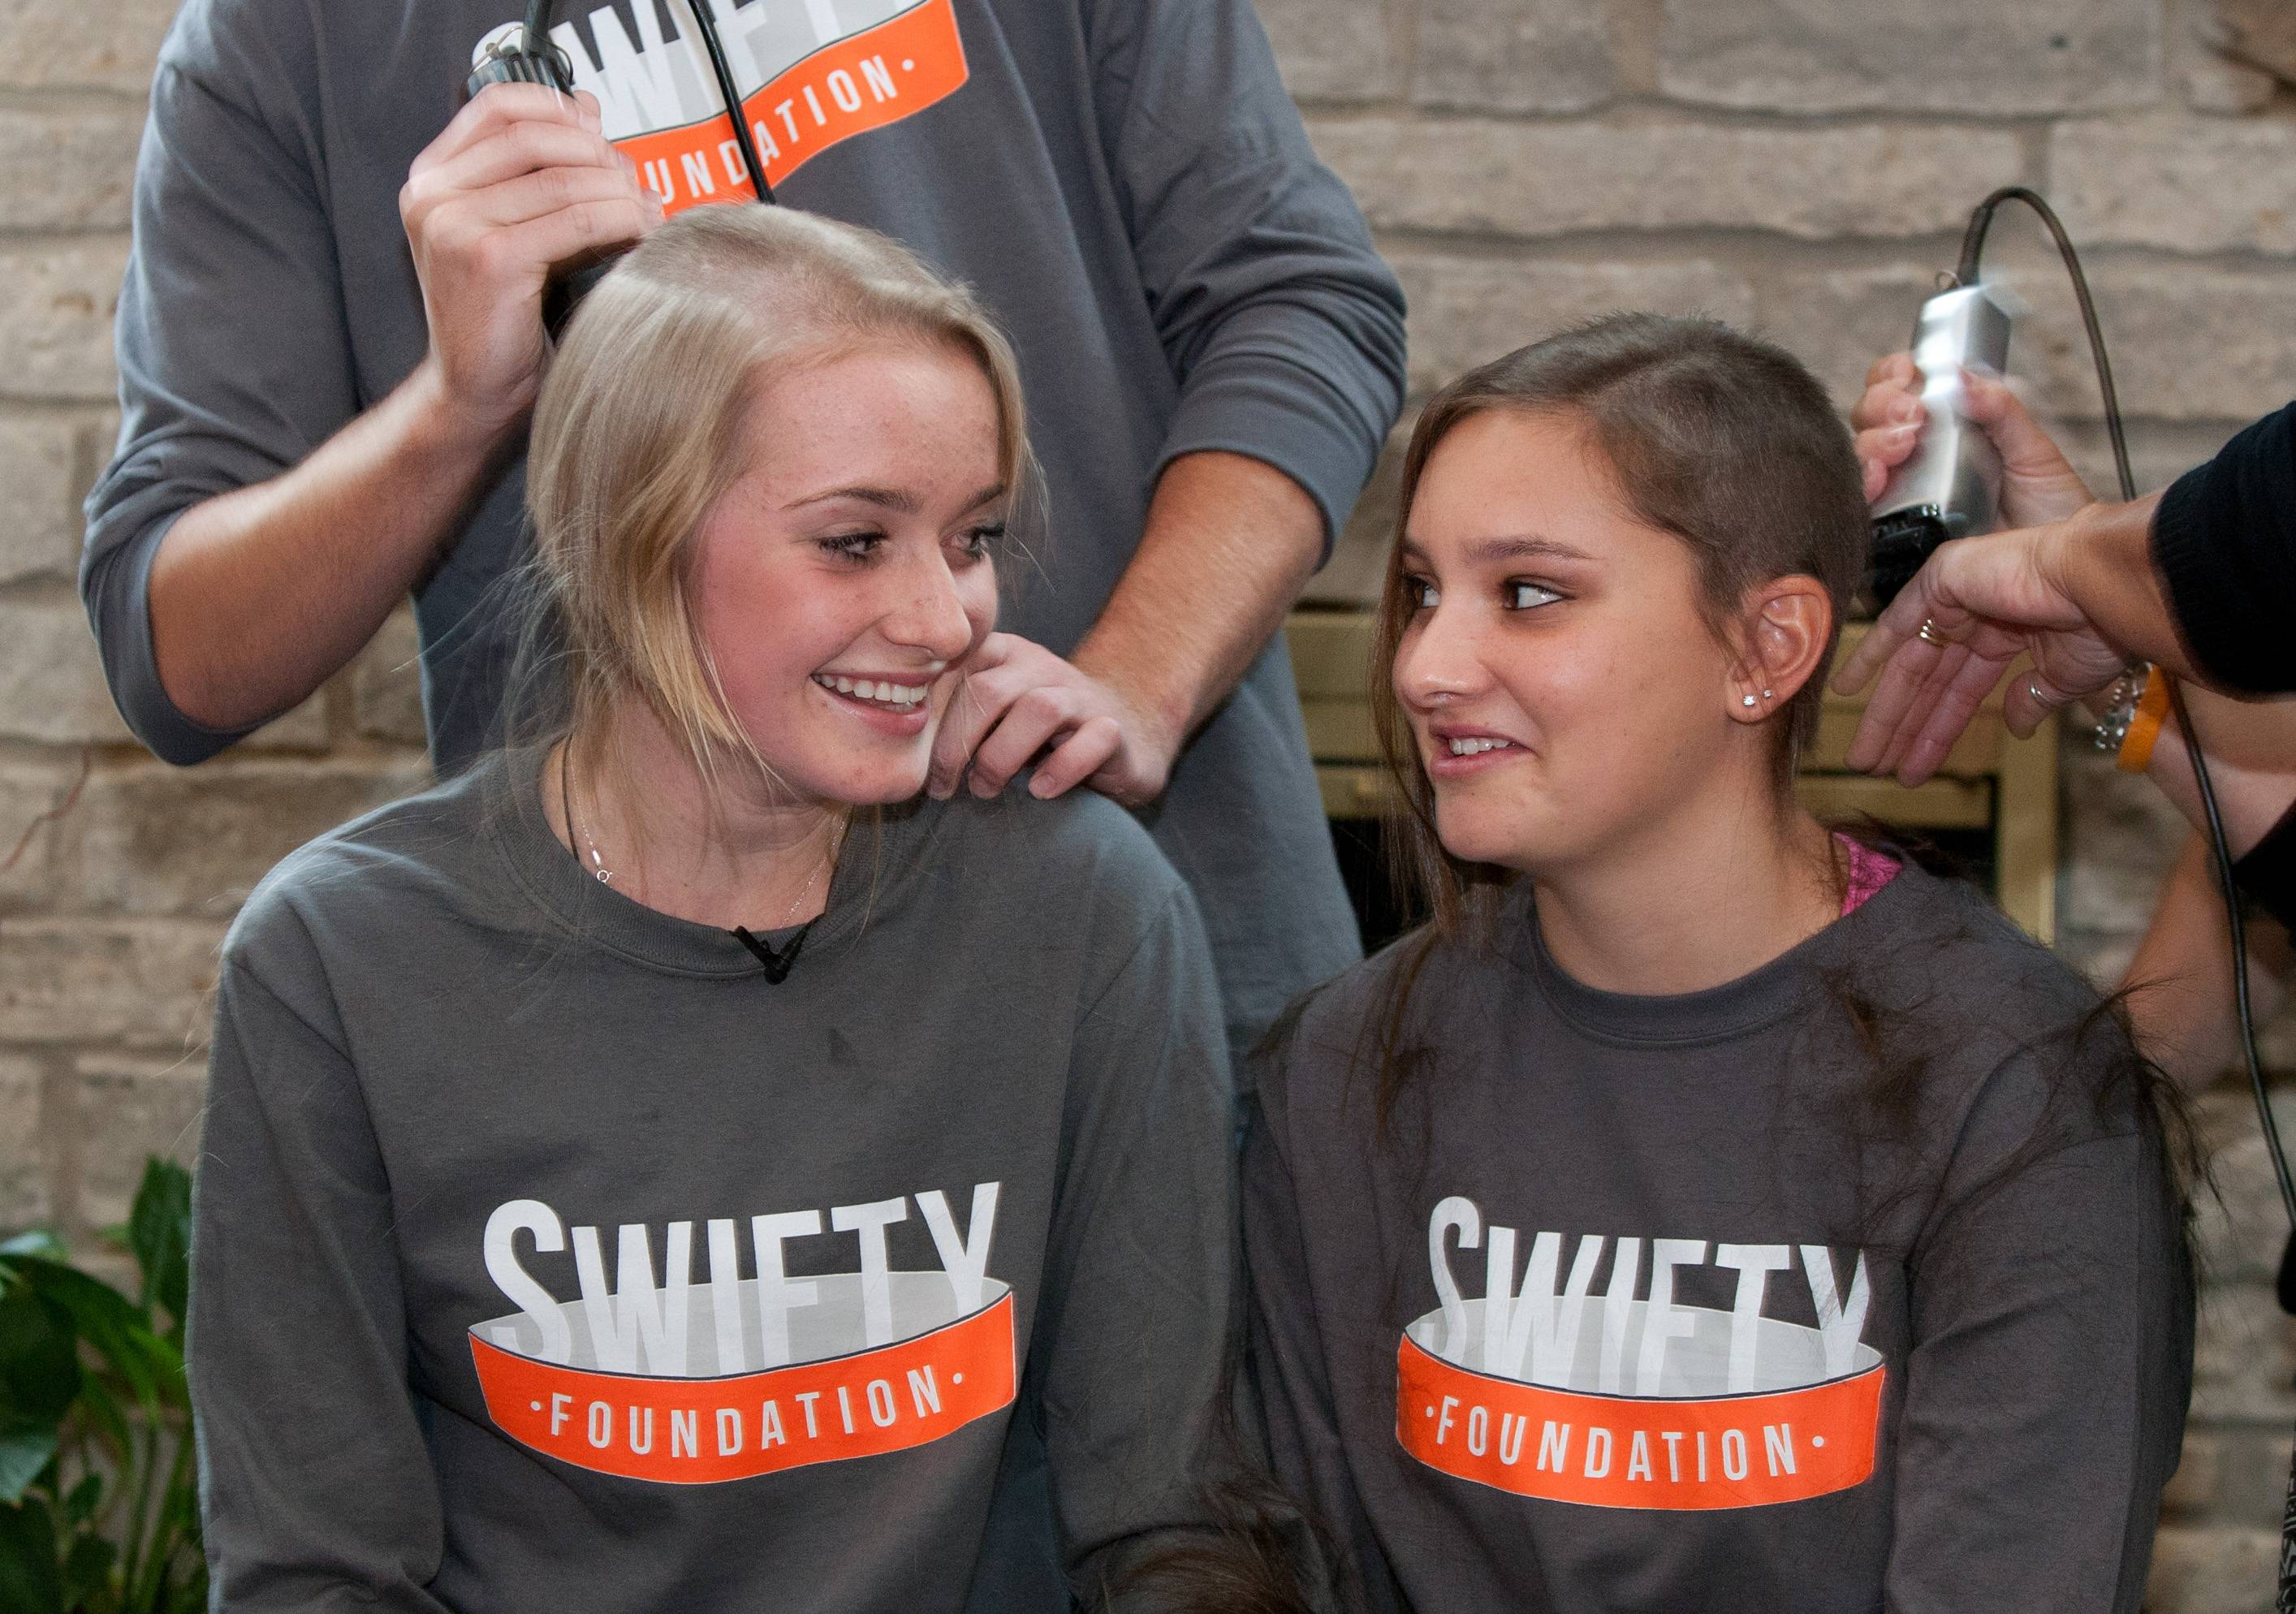 Kira Couch of Lisle, right, had her head shaved three years ago along with friend Bridget Gustafson of Woodridge, to raise money for the Swifty Foundation. The childhood cancer research organization was formed in honor of Gustafson's late twin, Michael, who died in 2013 at age 15.